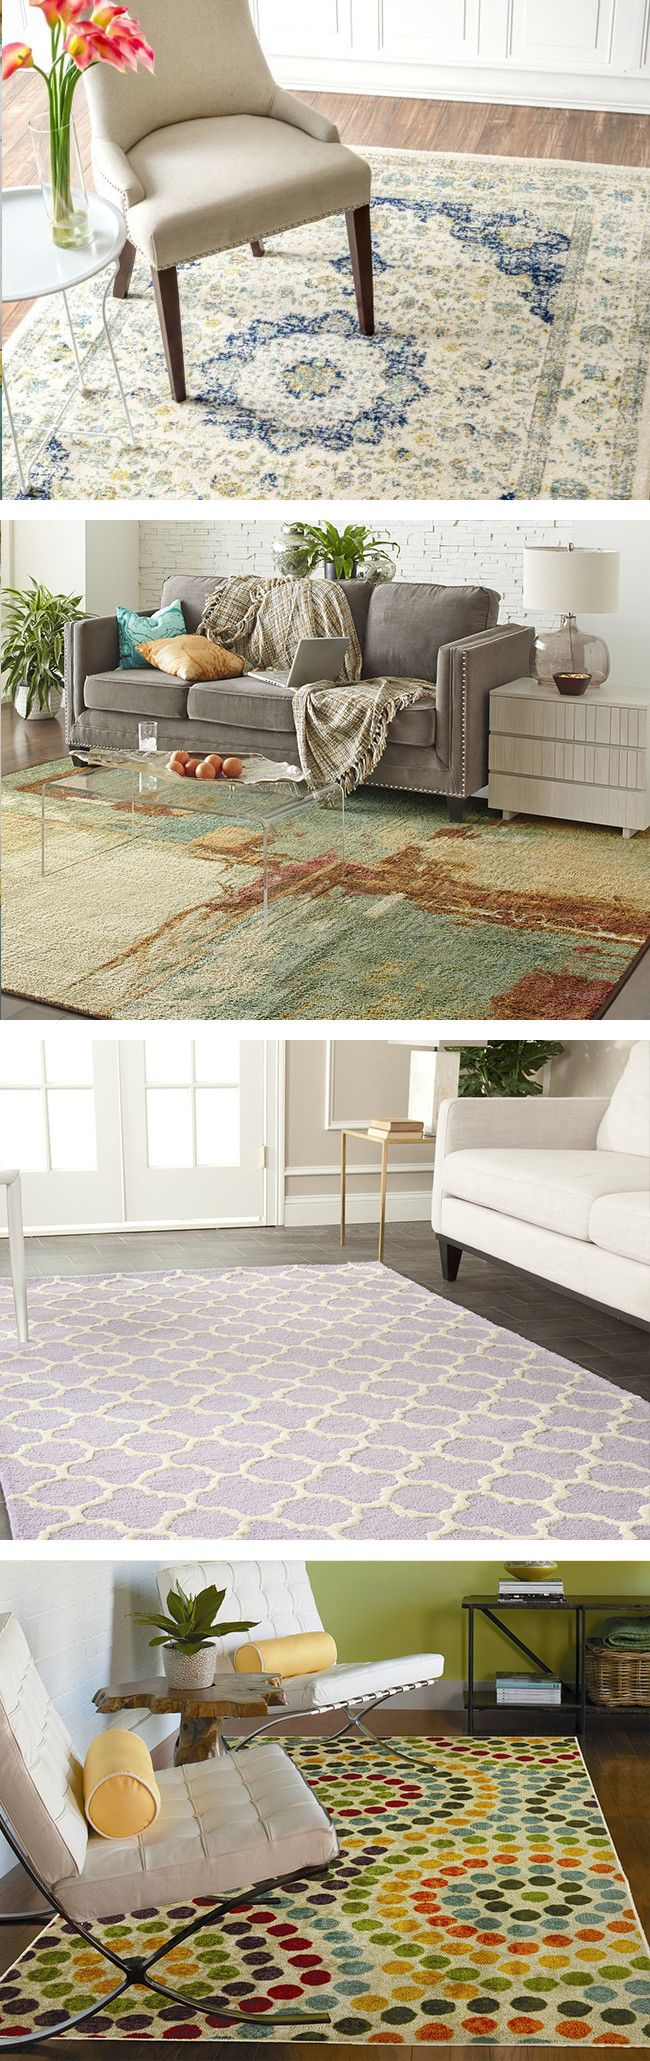 From the entryway to the bedroom, area rugs can complete the look of a room, set the tone, and add an extra layer of comfort—or all three! For a serene bedroom or home office, stick with patterns in shades of beige, blue, or green. Visit Wayfair and sign up today to get access to exclusive deals everyday up to 70% off. Free shipping on all orders over $49.